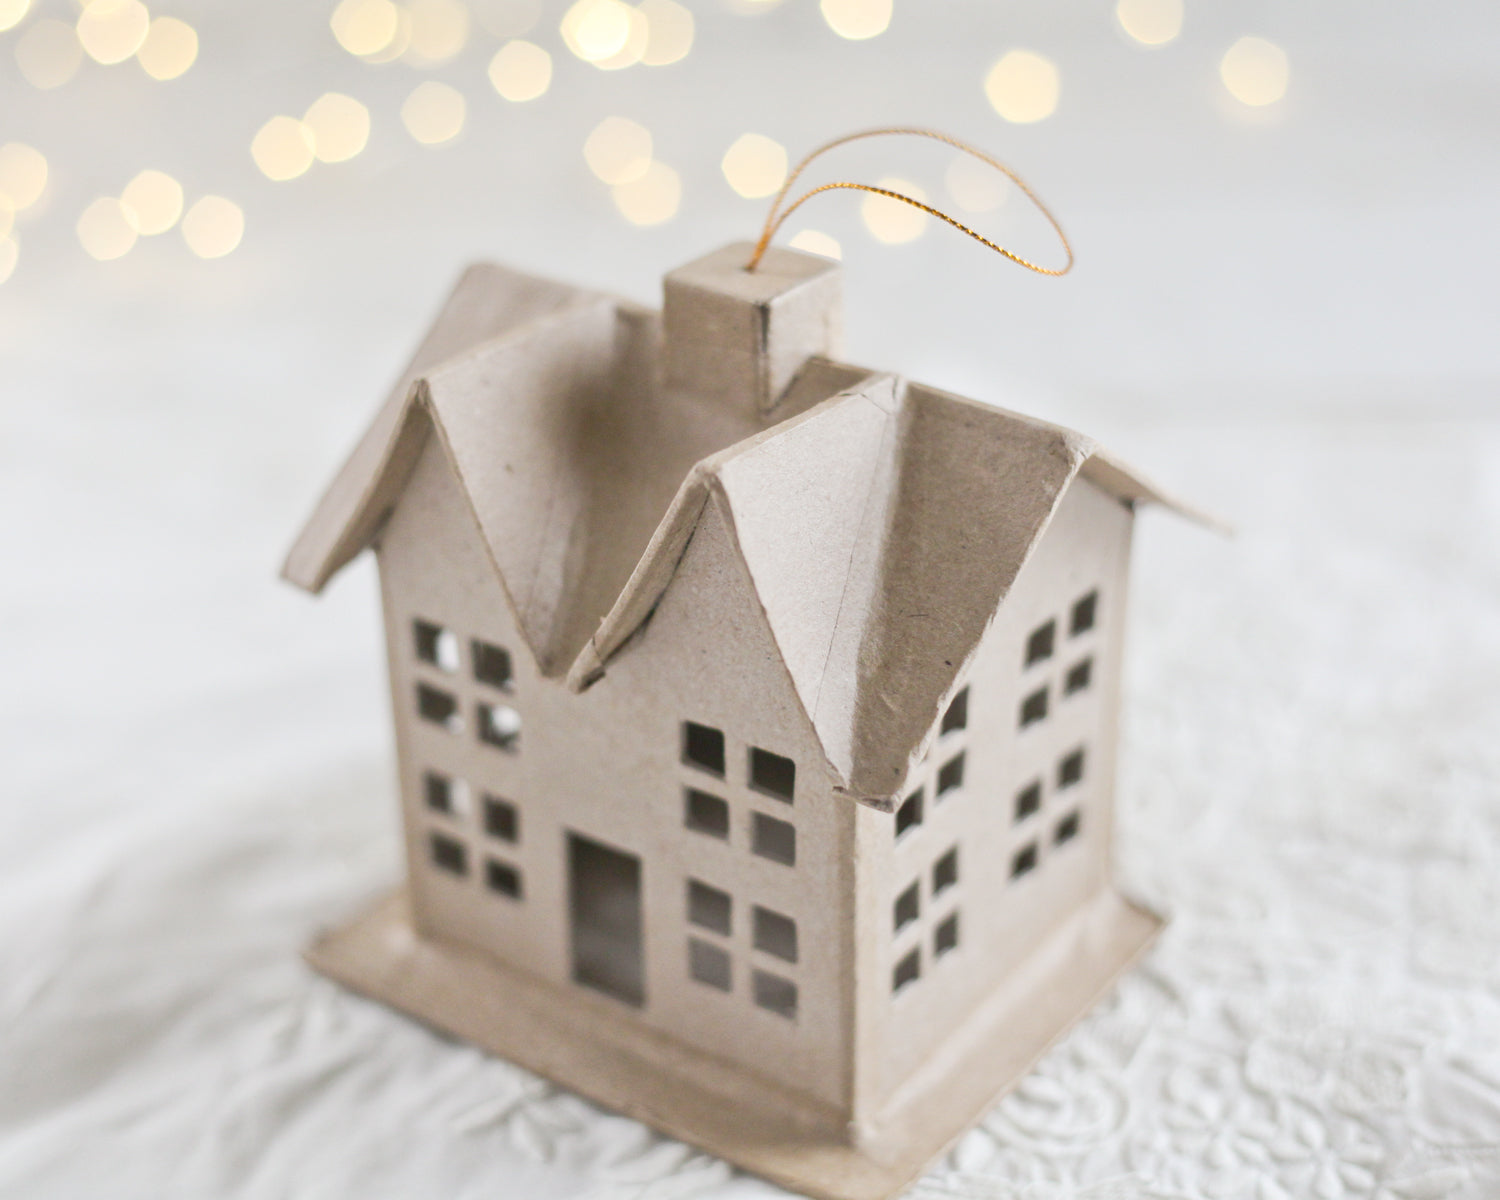 Paper Mache Craft House Cardboard House Smile Mercantile Craft Co